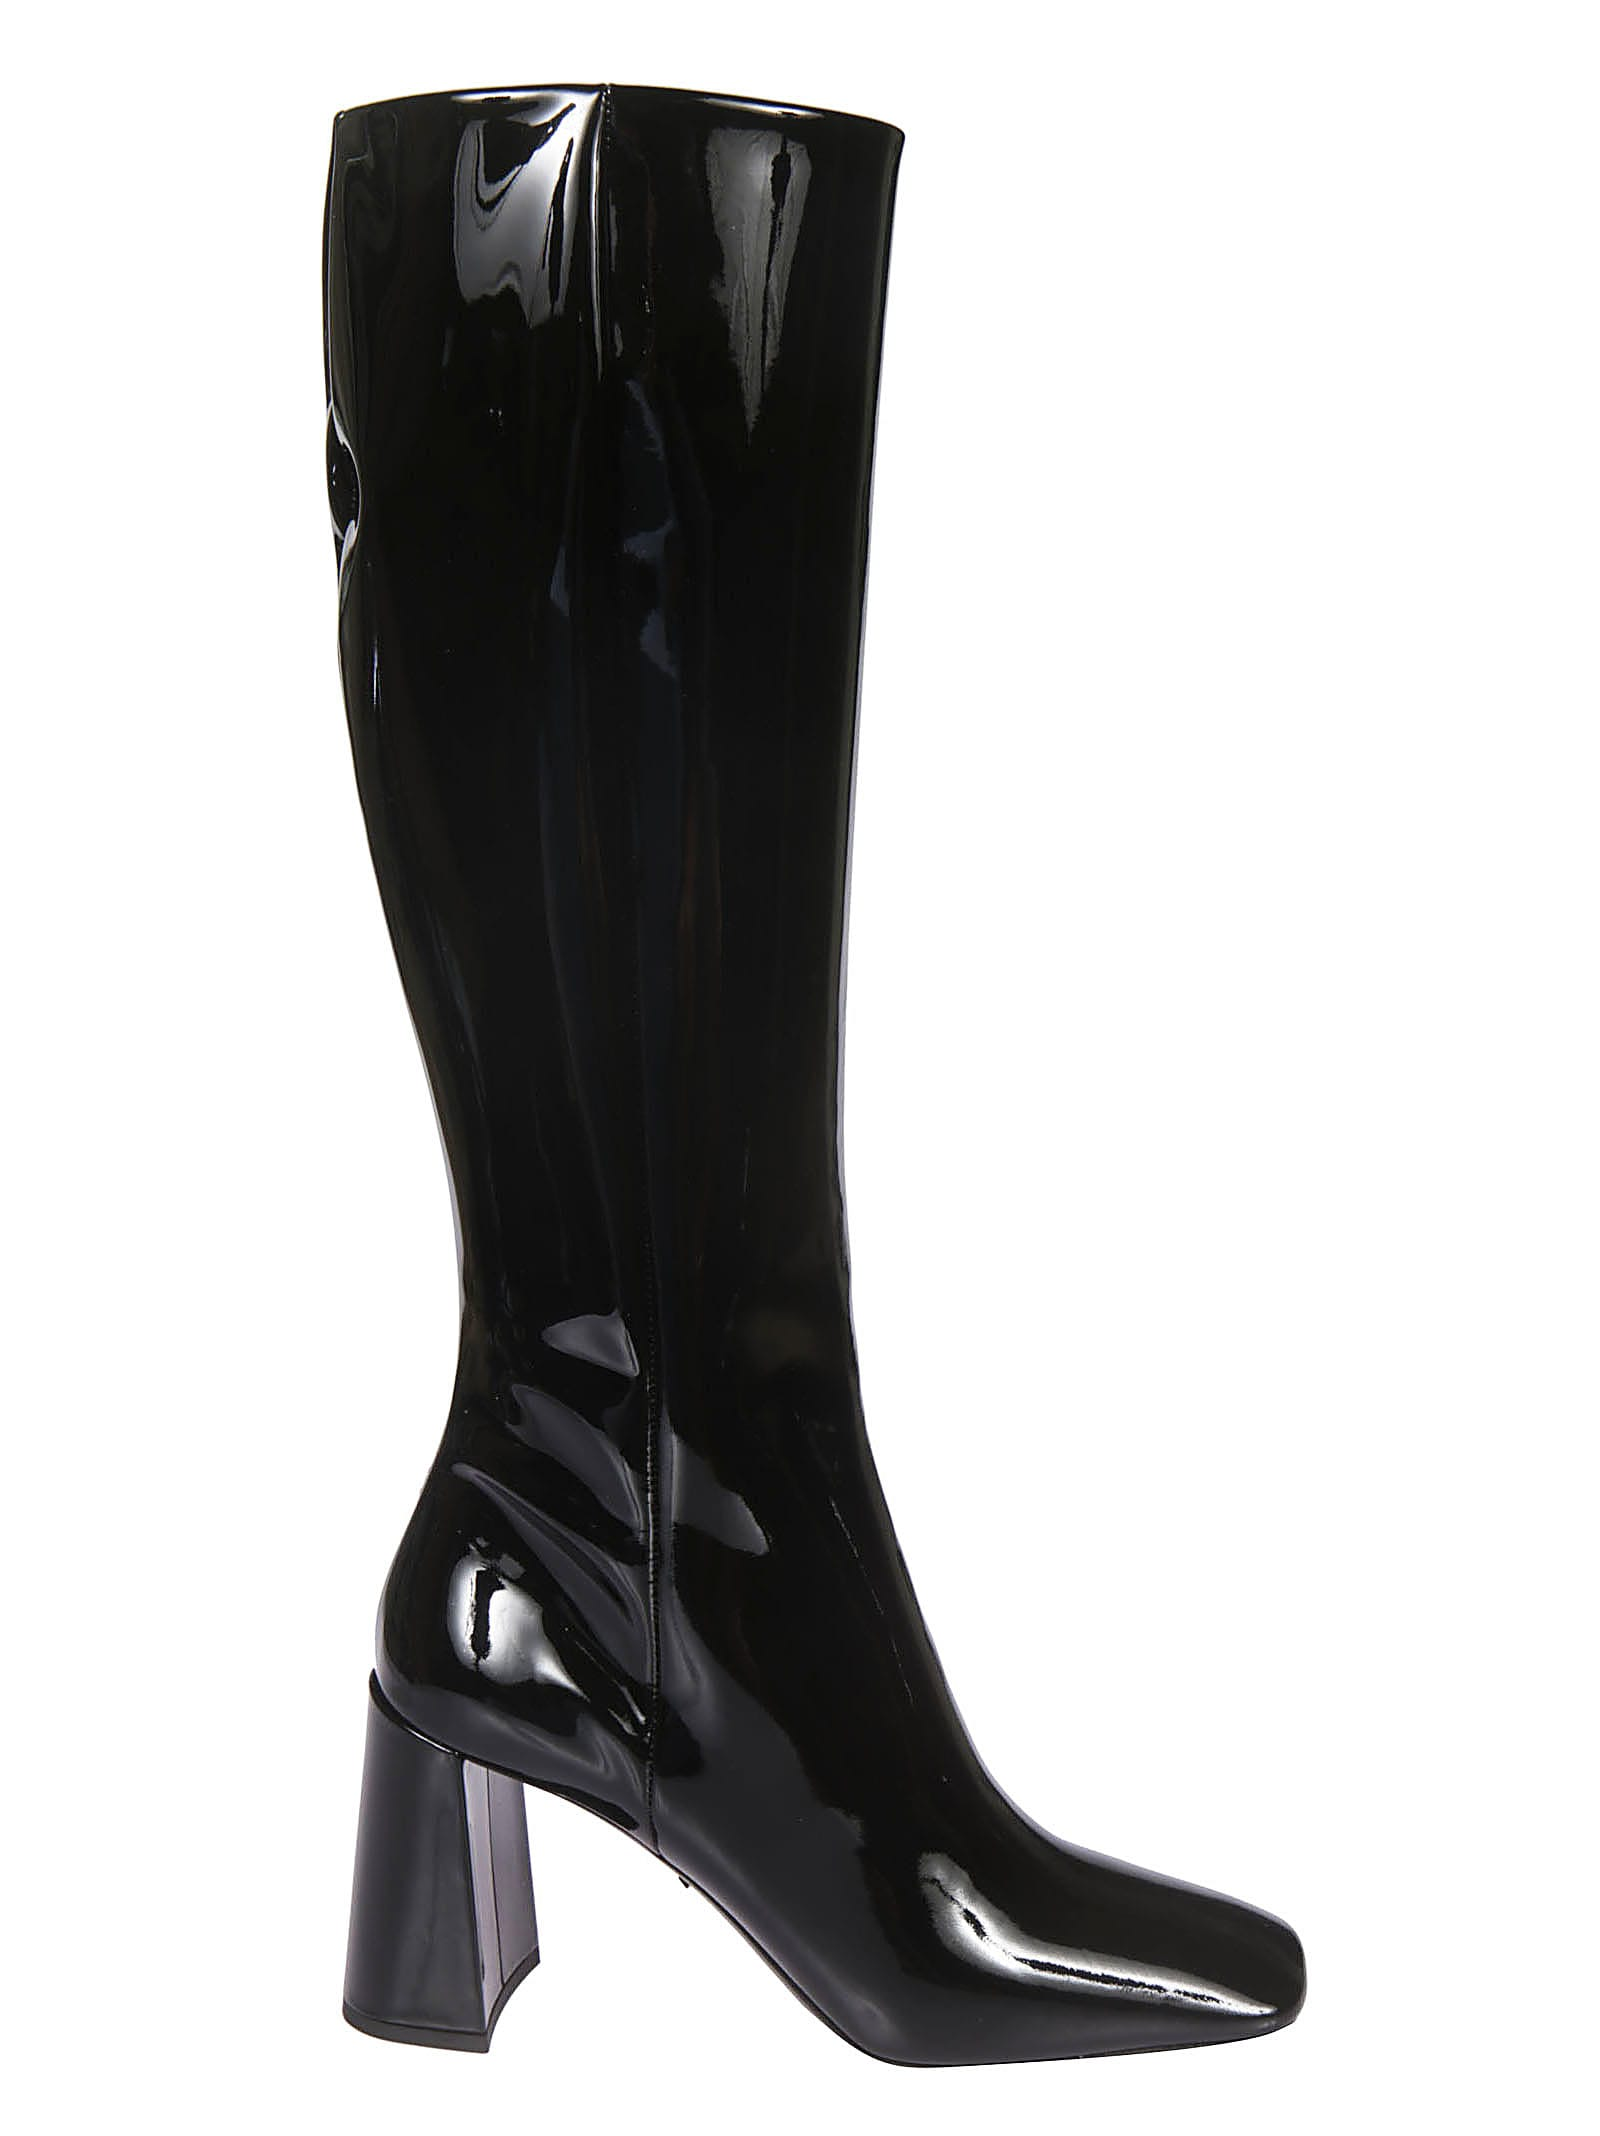 Buy Prada Vernice High Boots online, shop Prada shoes with free shipping